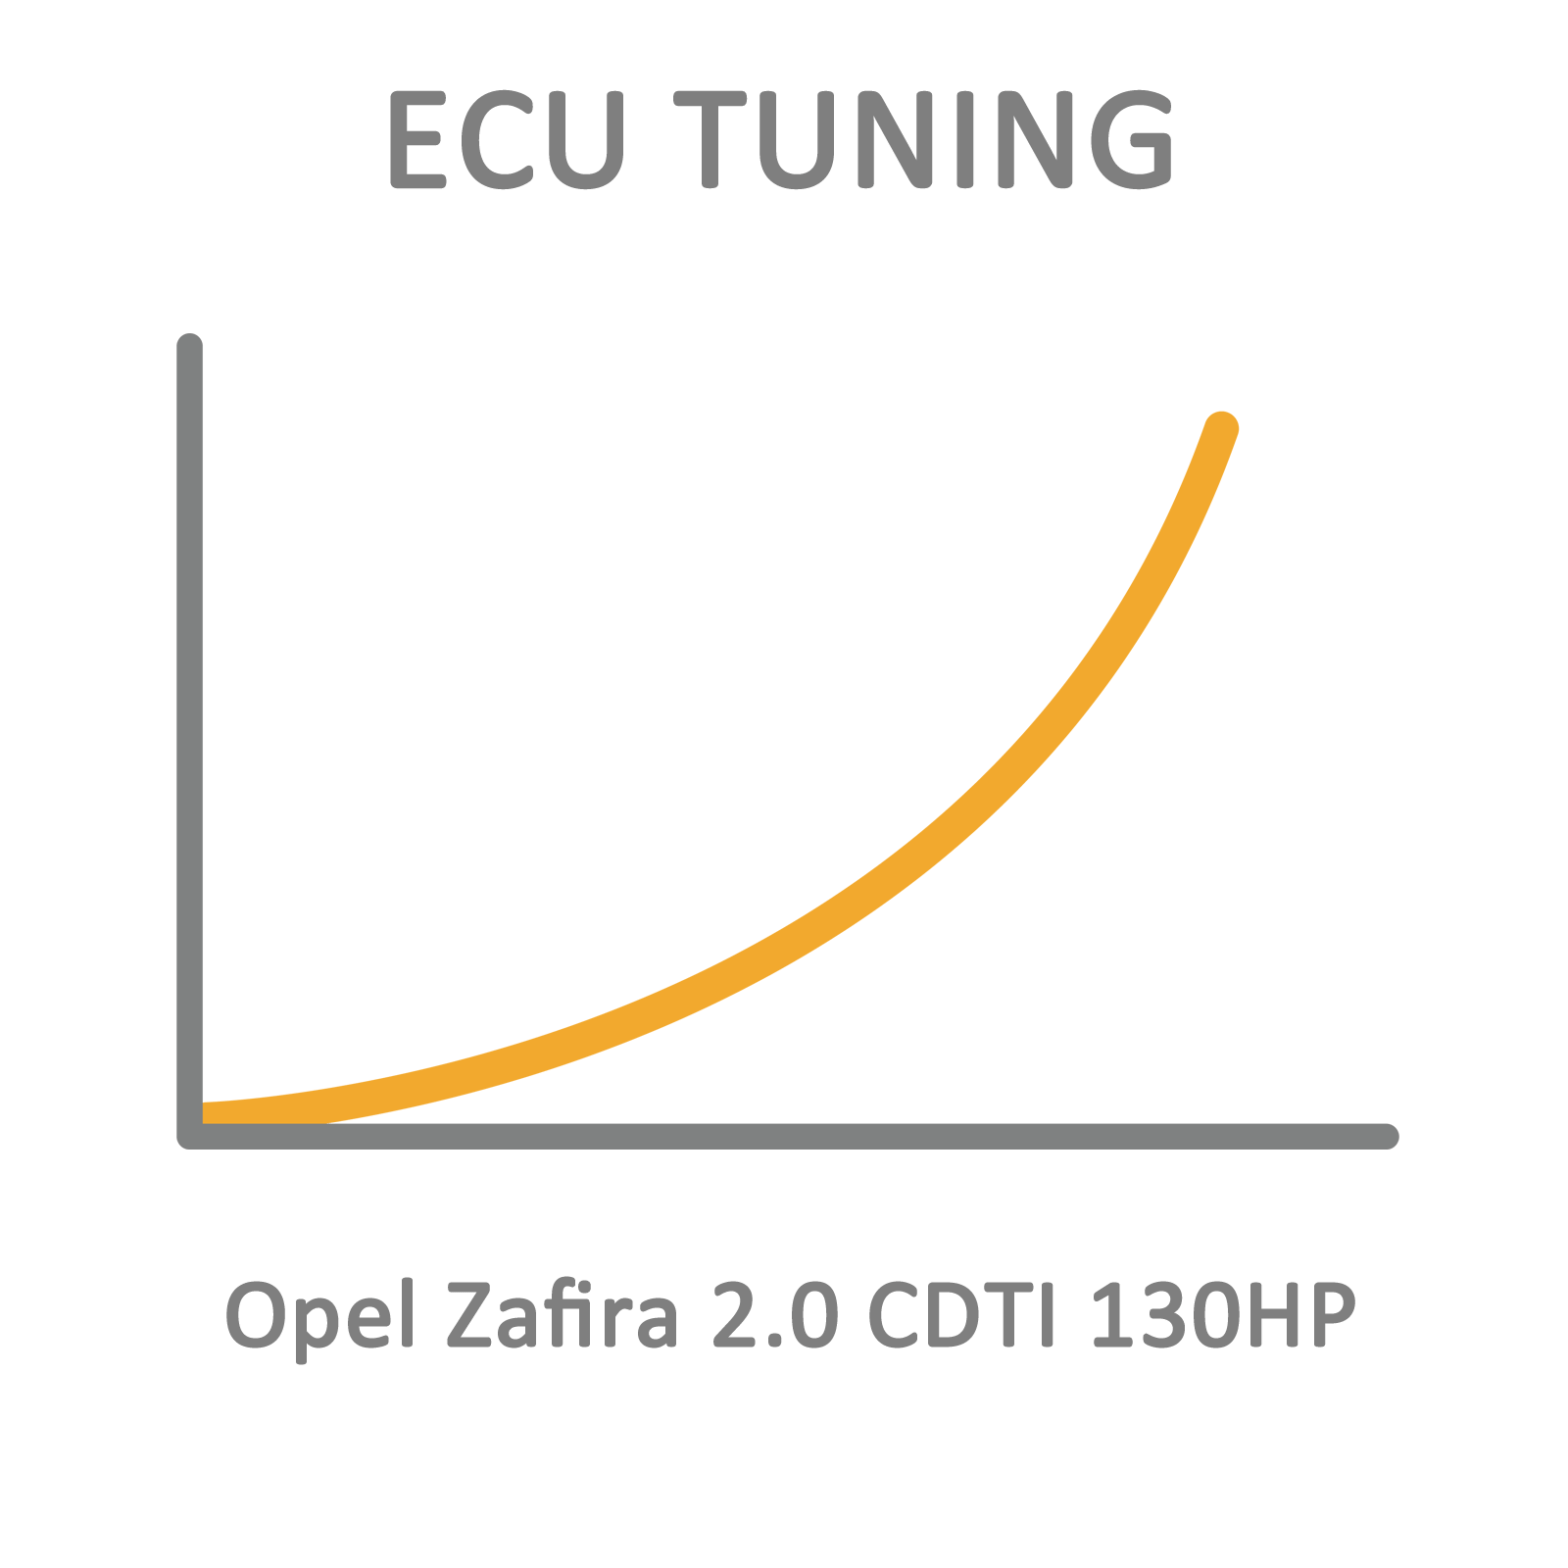 Opel Zafira 2.0 CDTI 130HP ECU Tuning Remapping Programming